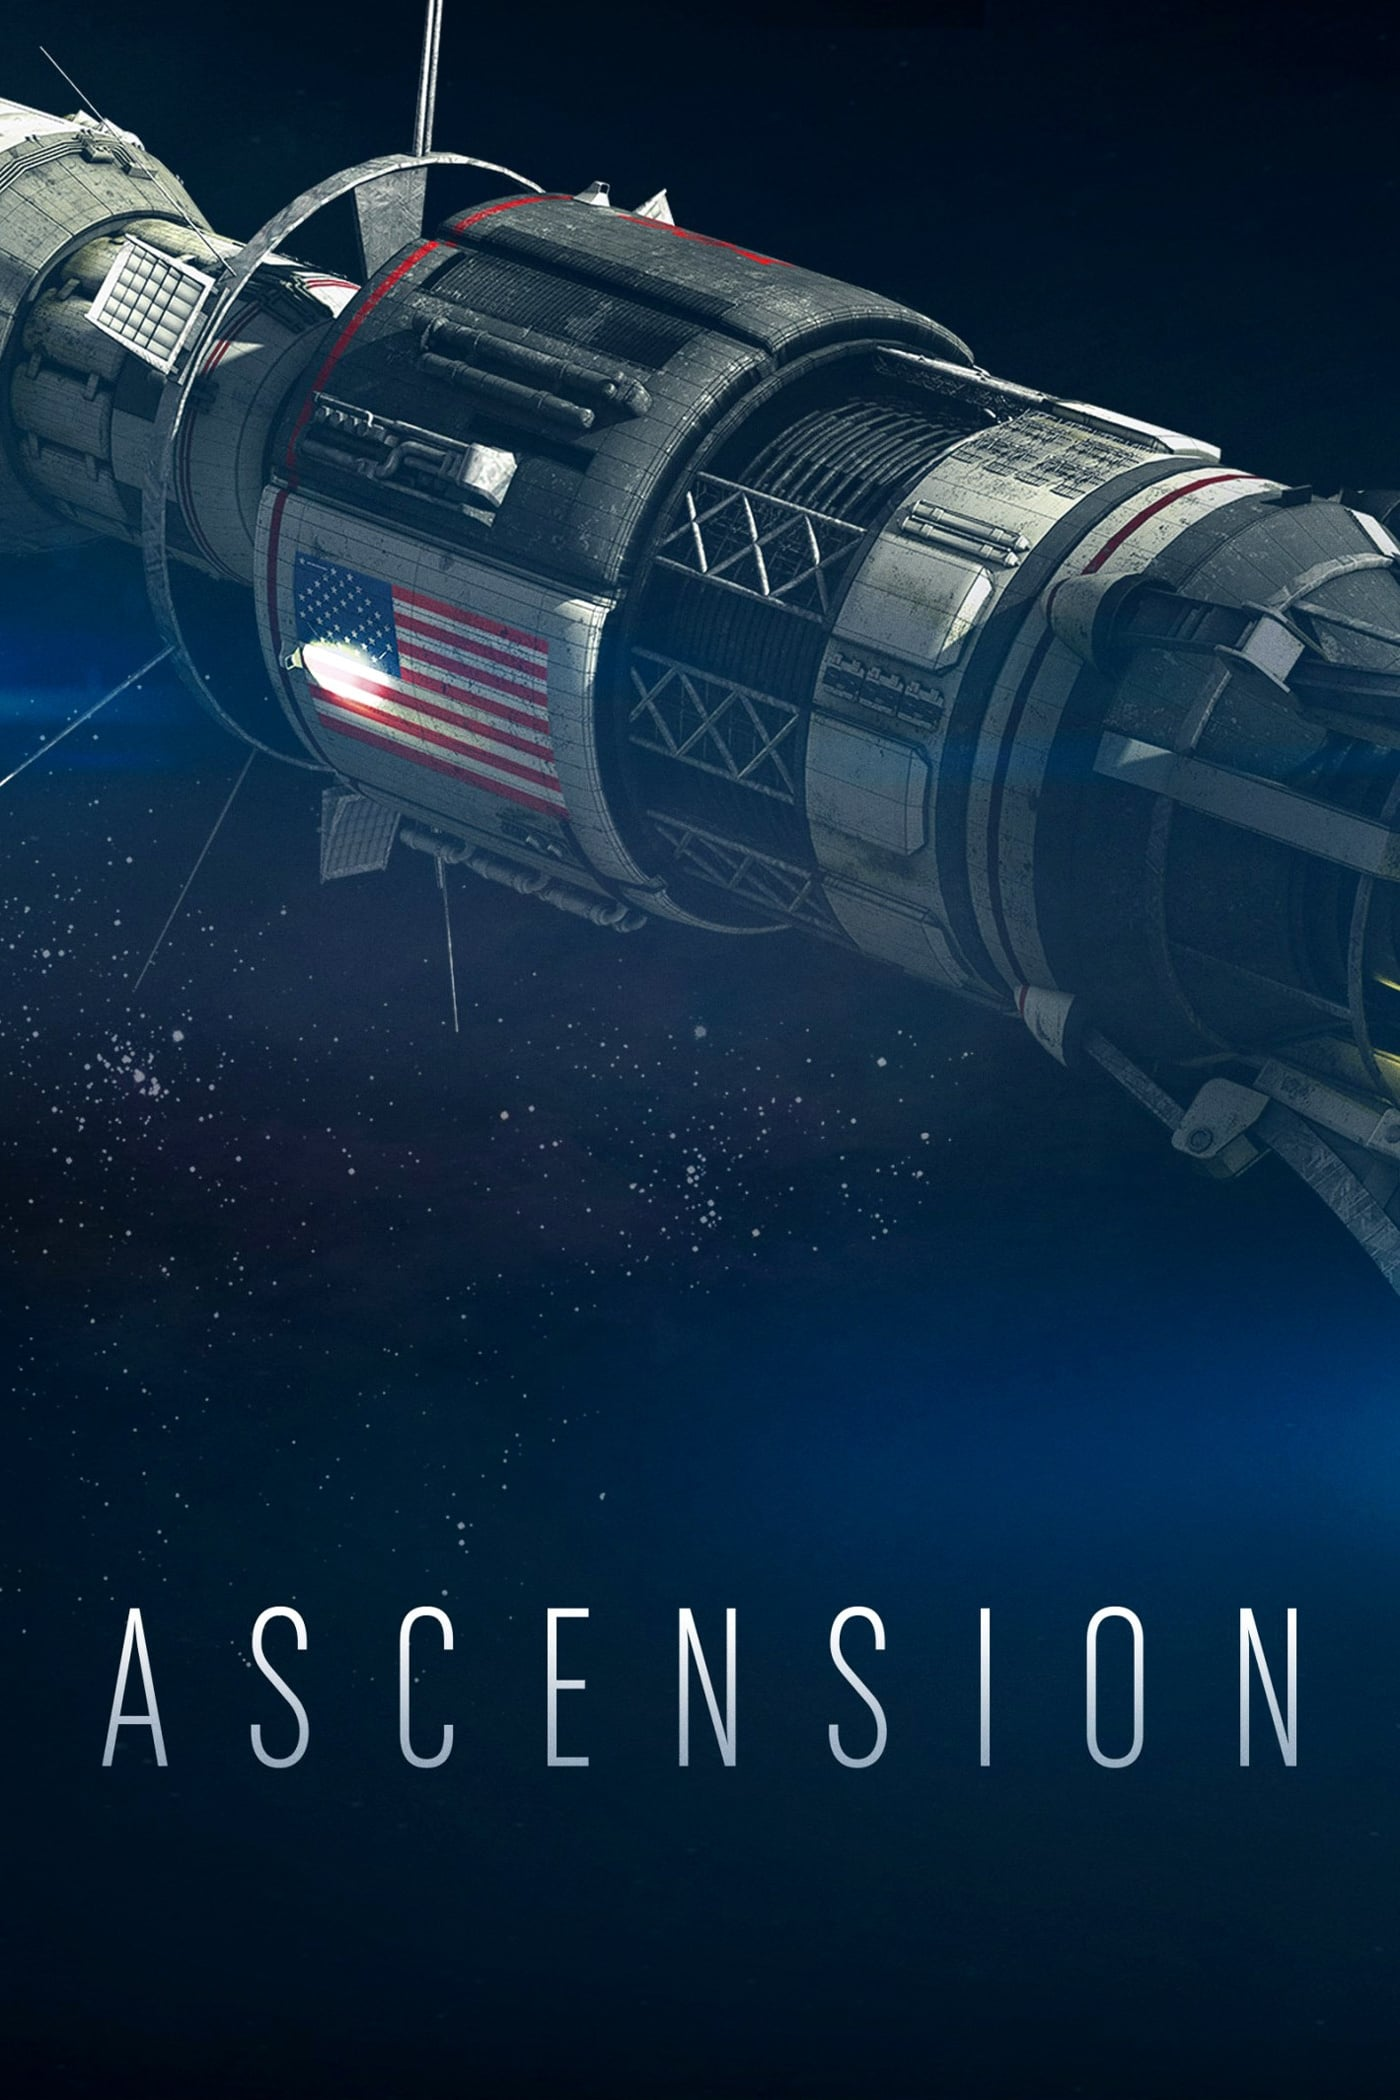 Ascension (2014)